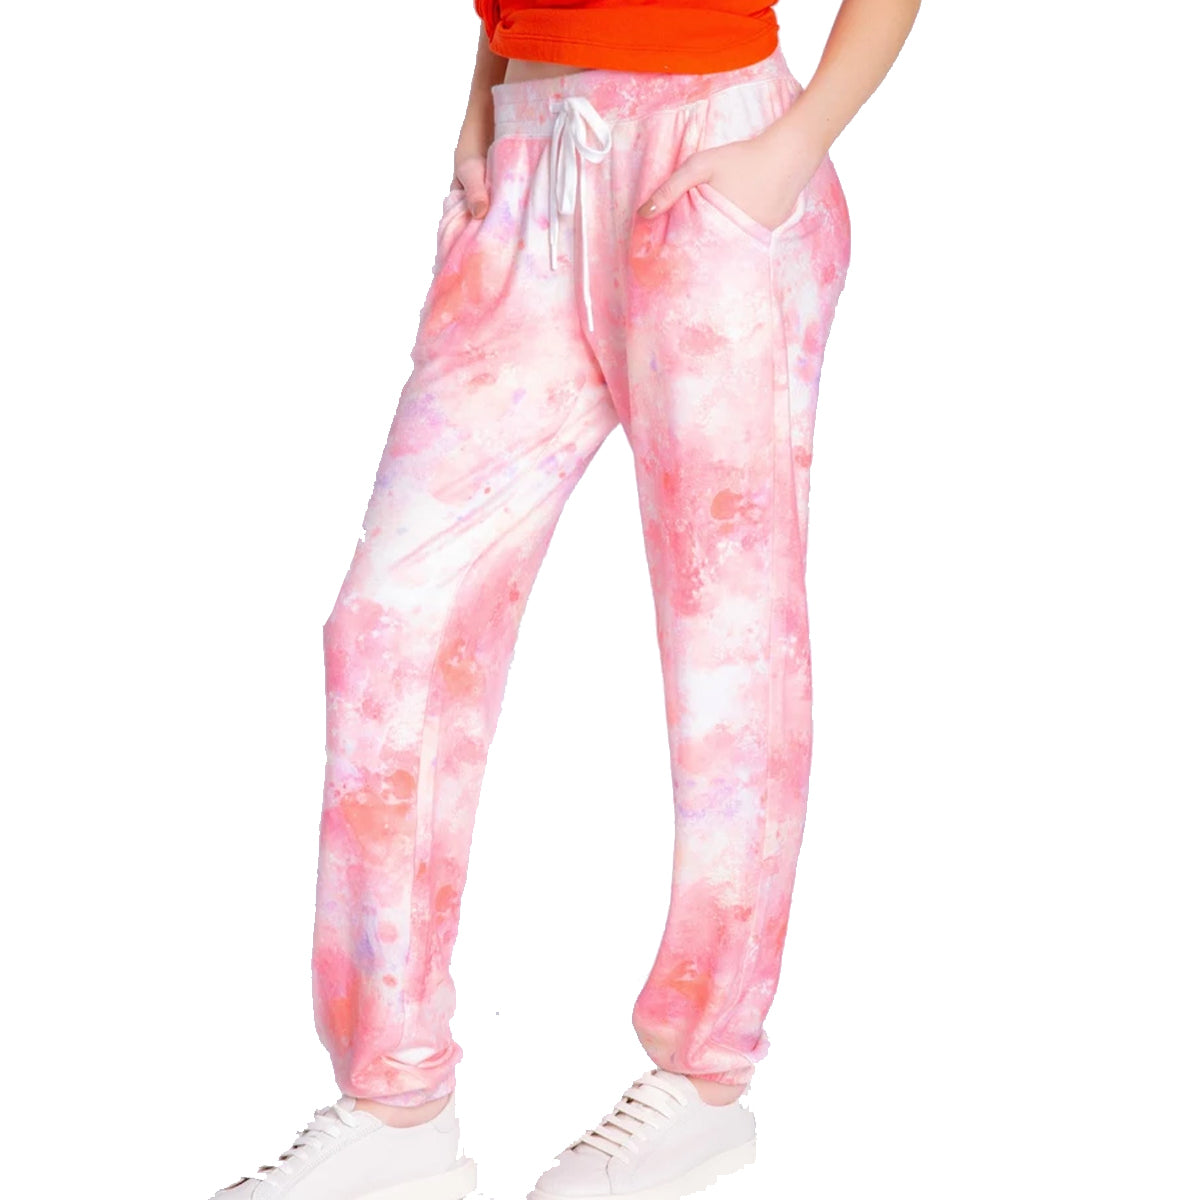 PJ Salvage Women's Melting Crayons Banded Pants - Coral